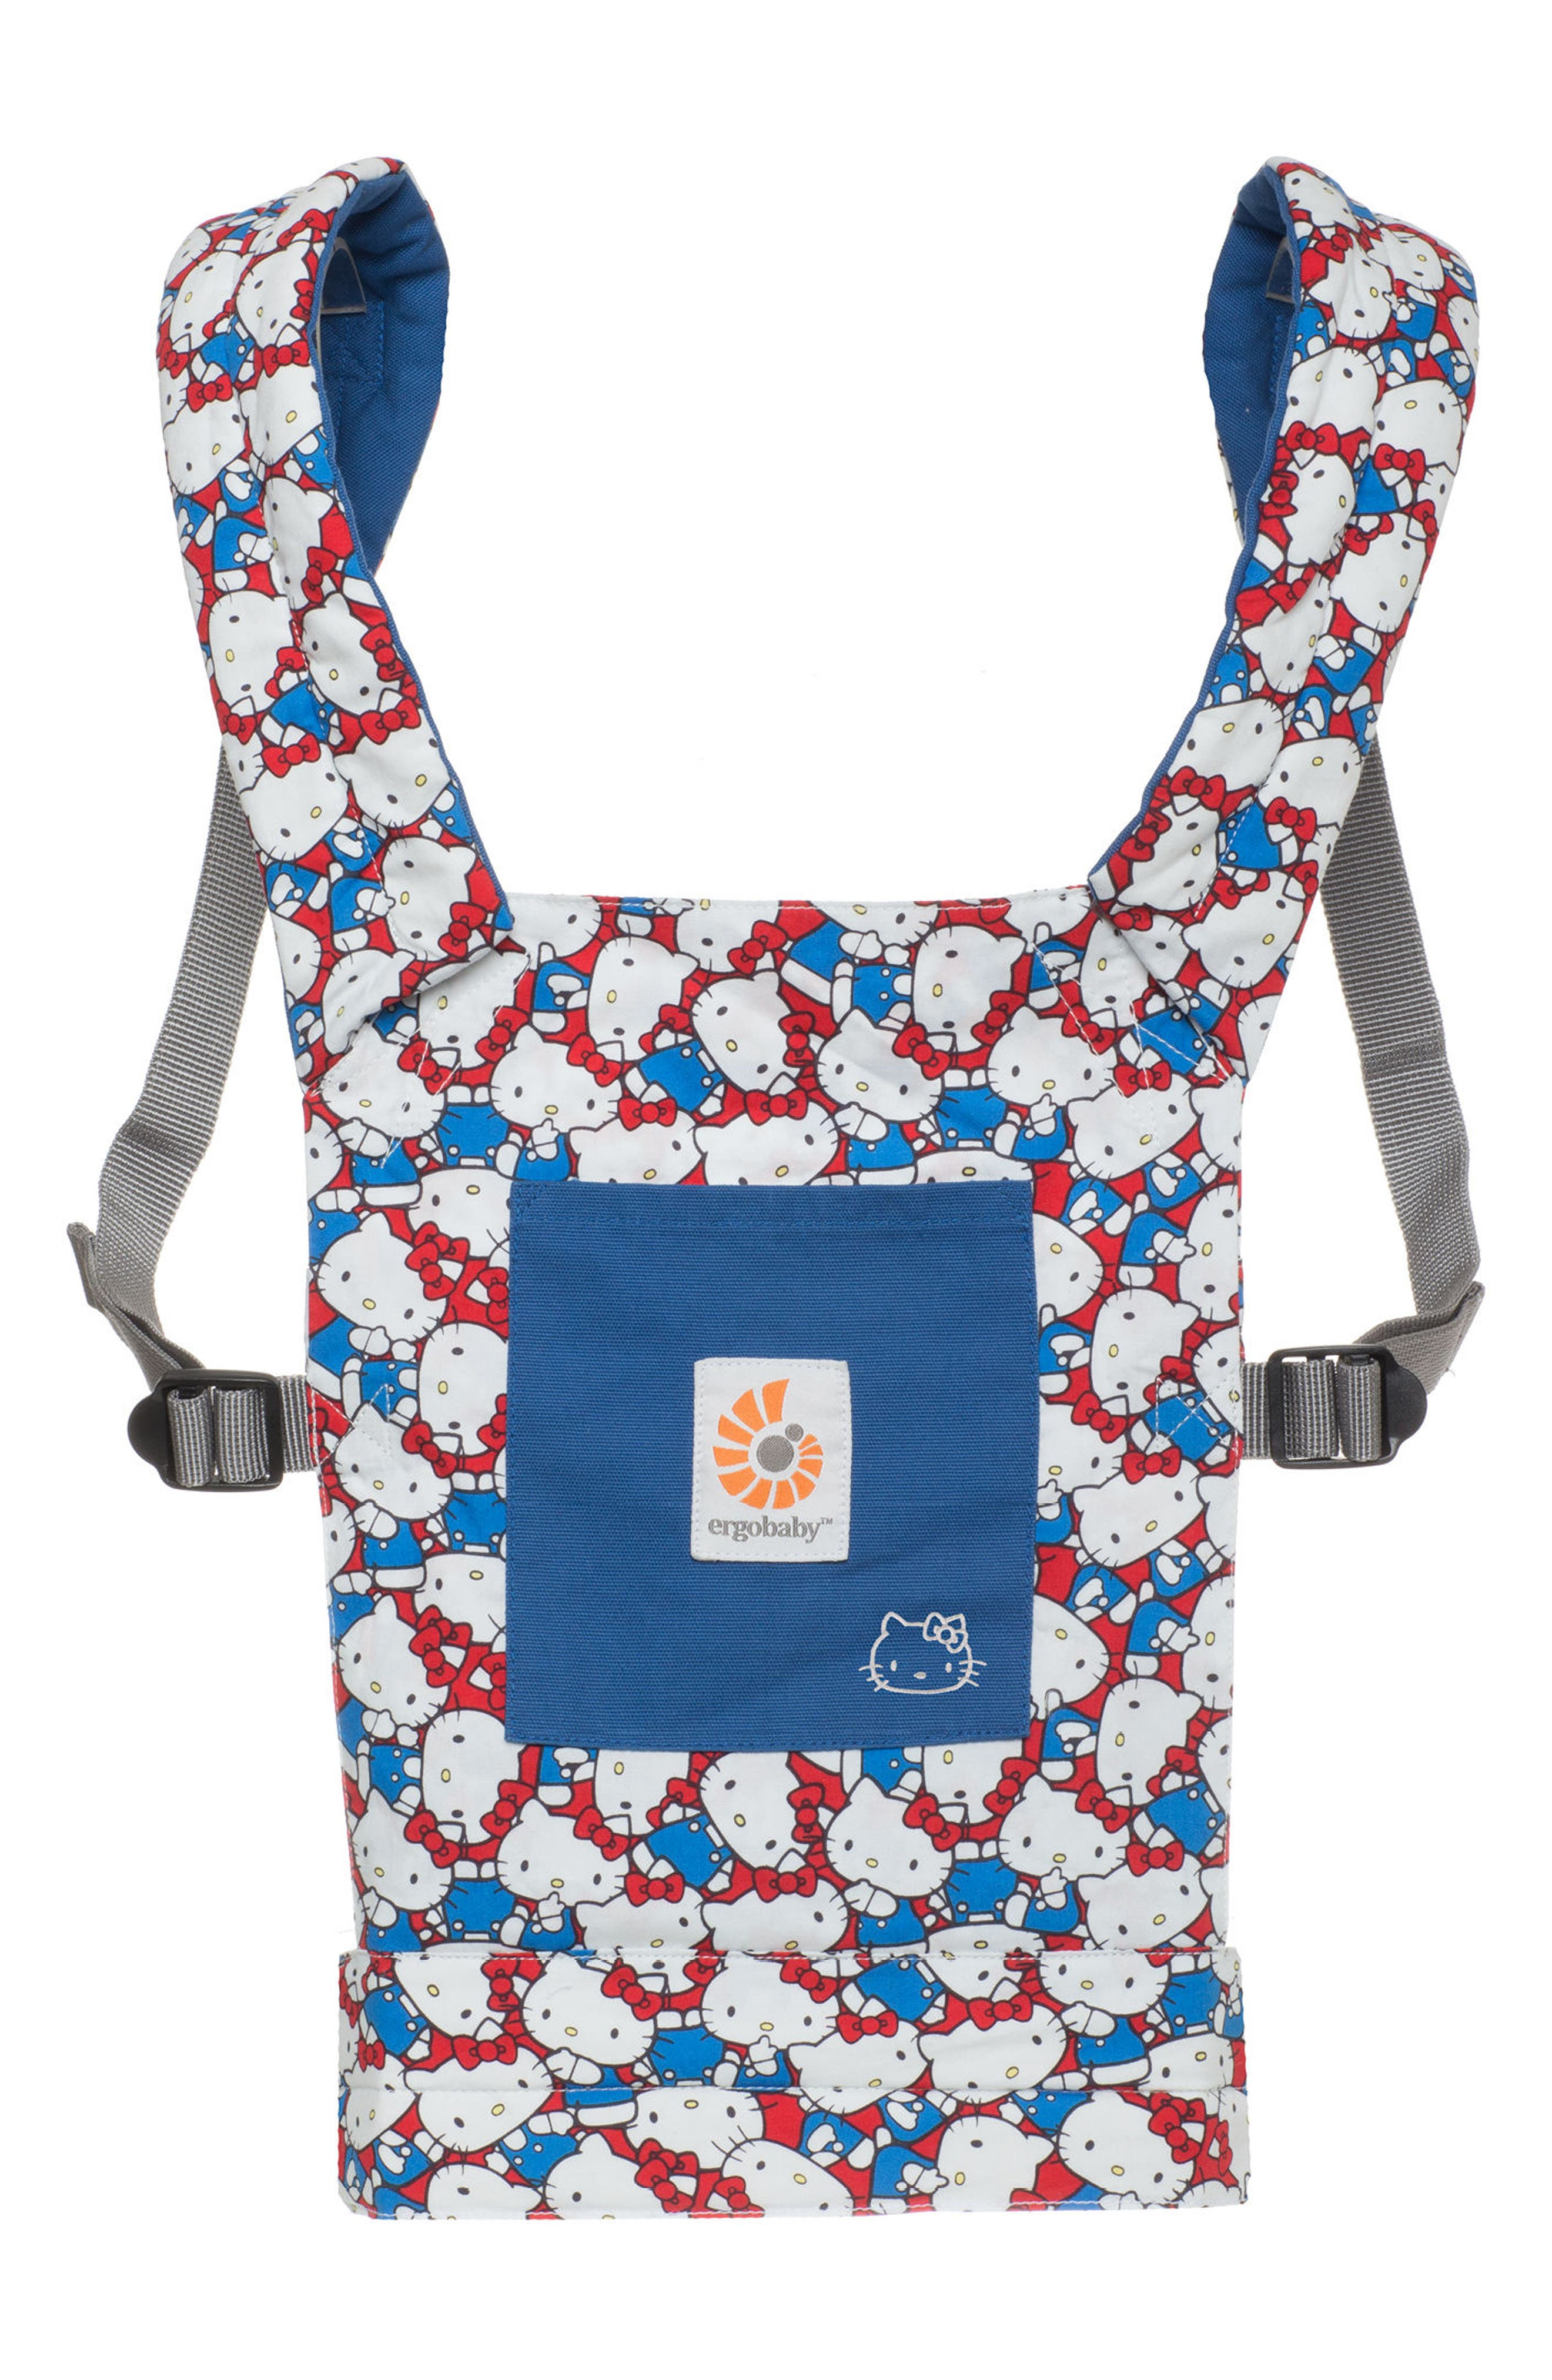 x Hello Kitty<sup>®</sup> Doll Carrier,                             Main thumbnail 1, color,                             Blue